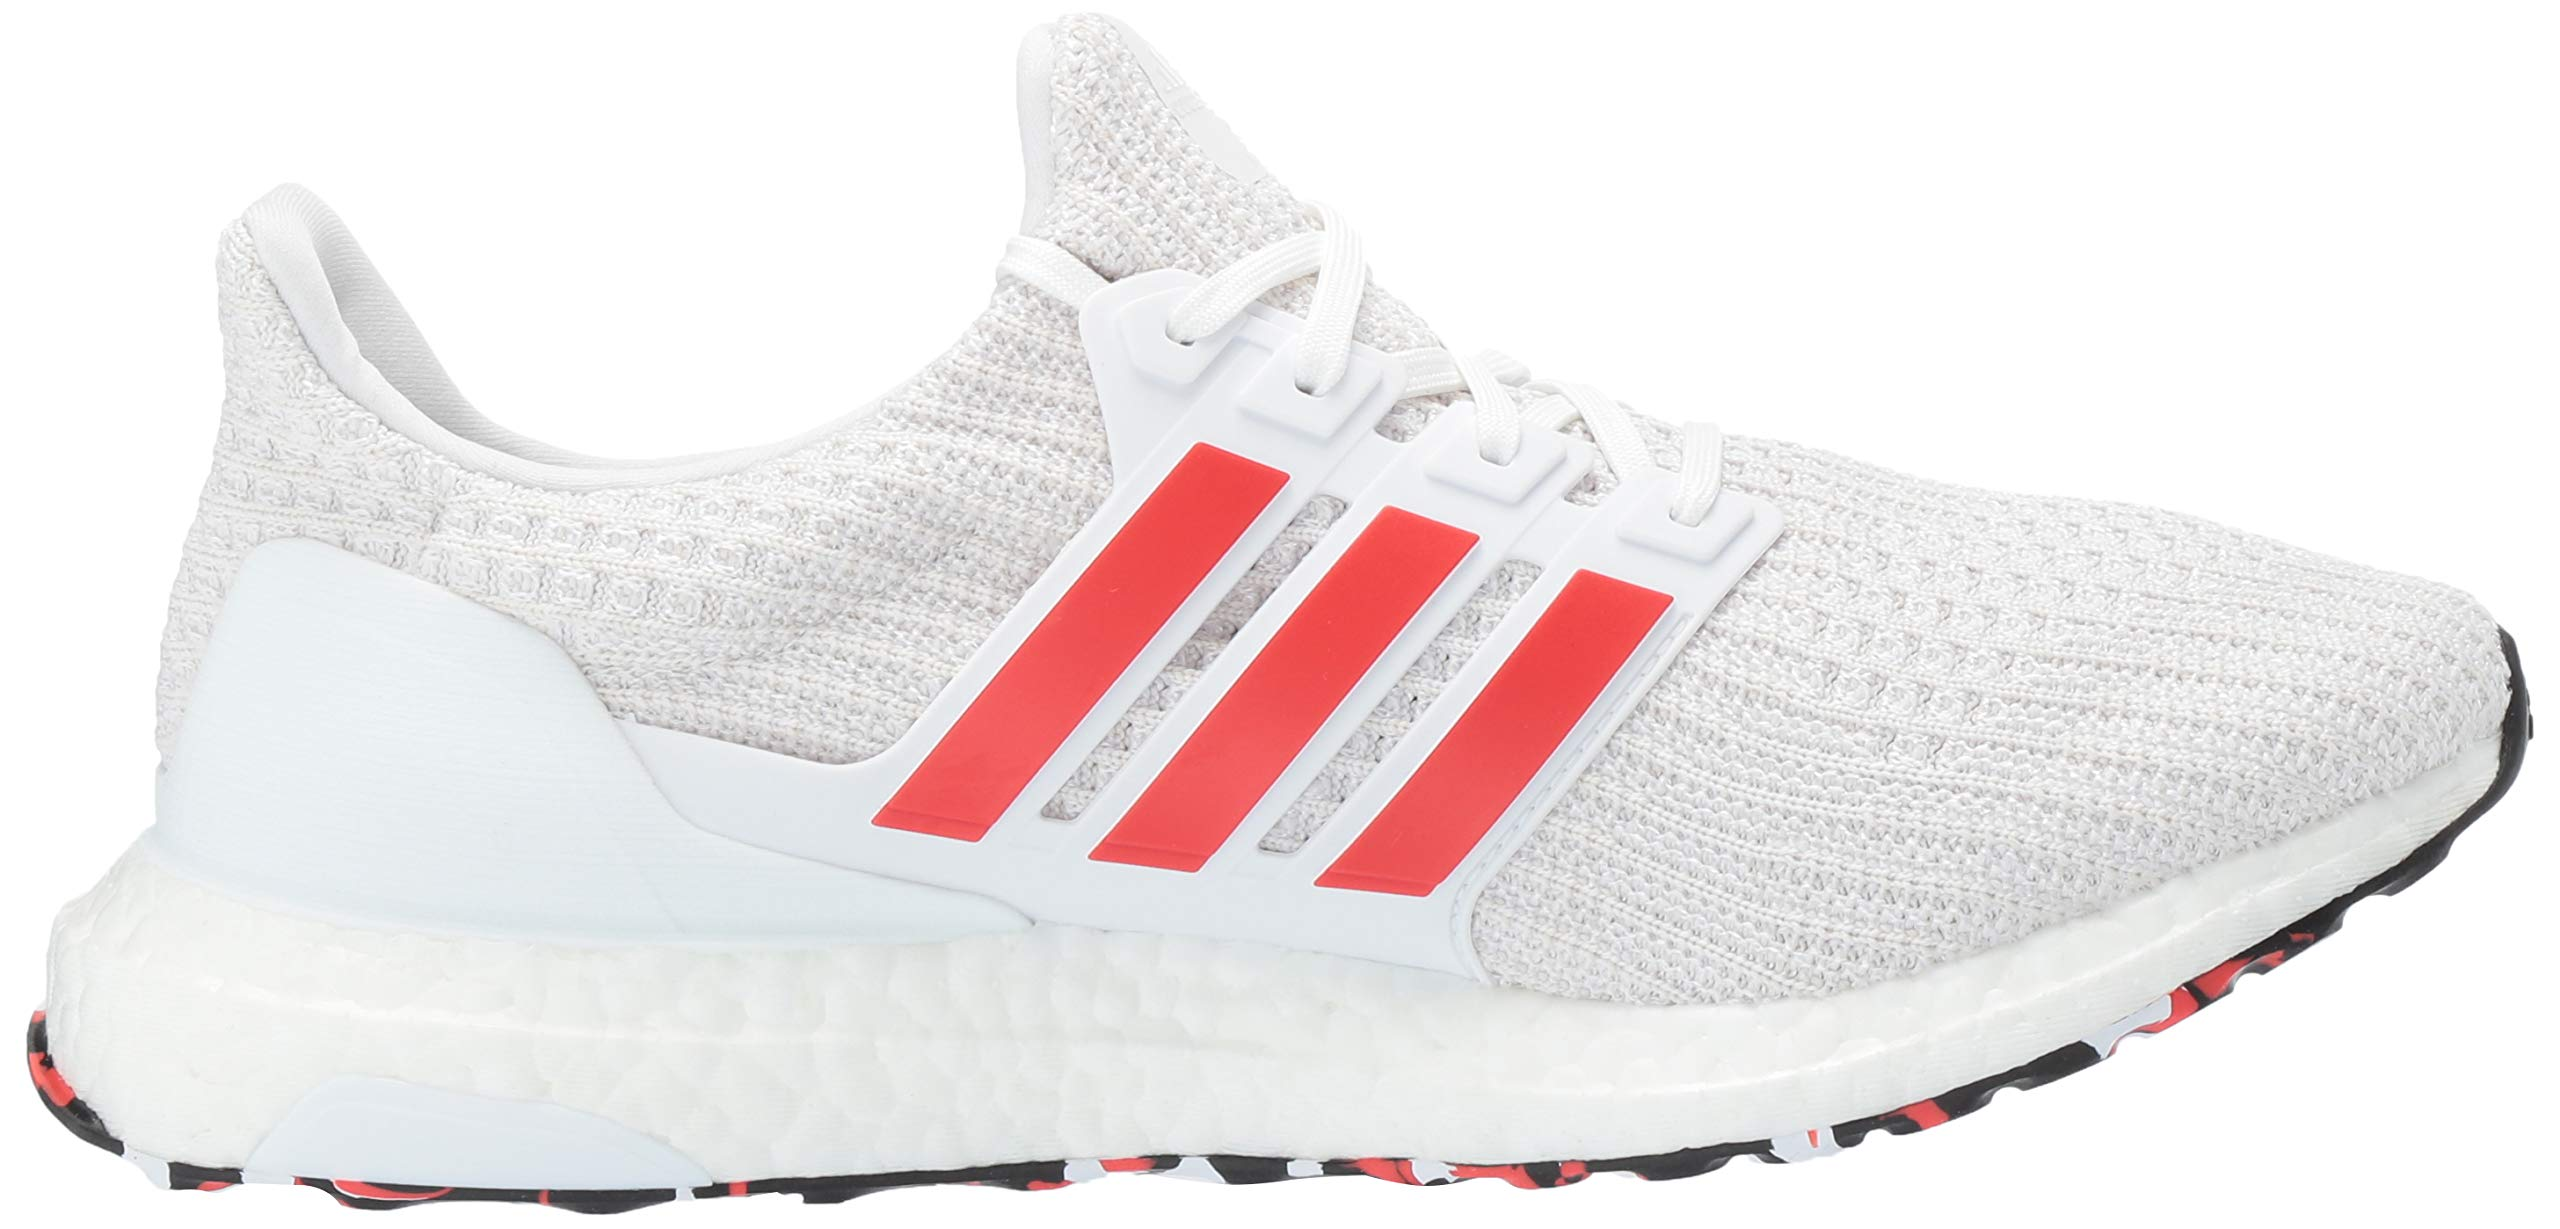 adidas Men's Ultraboost, Active red/Chalk White, 4 M US by adidas (Image #7)